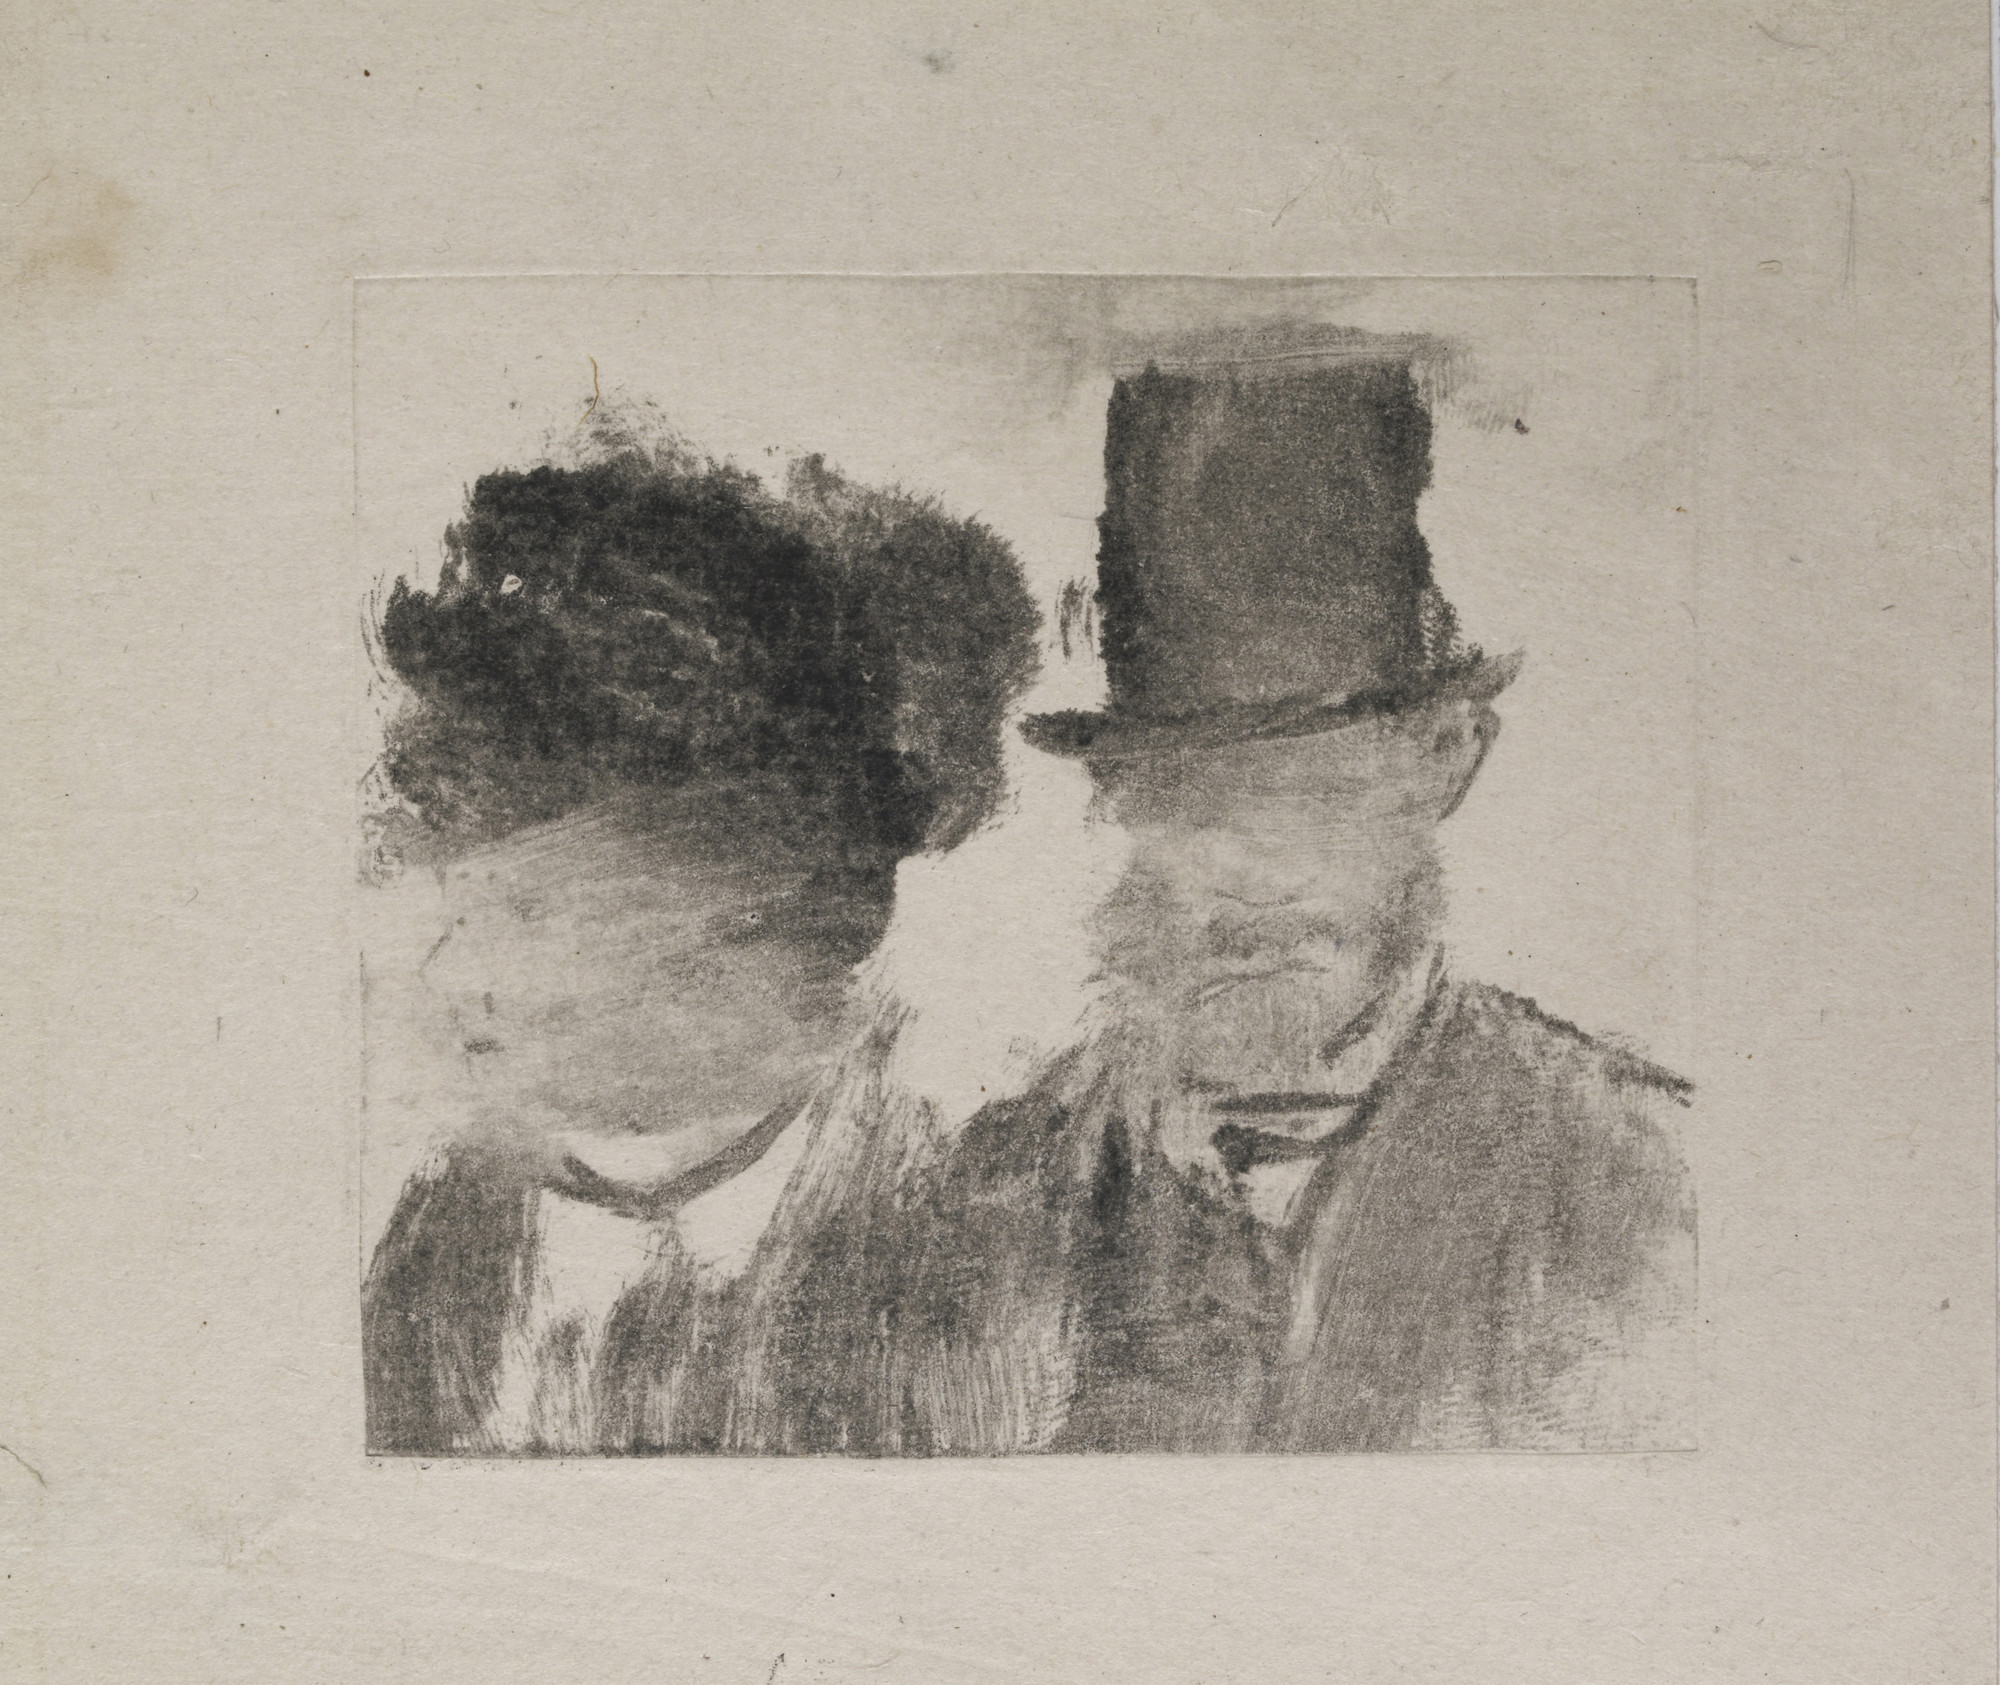 Edgar Degas. Heads of a Man and a Woman (Homme et femme, en